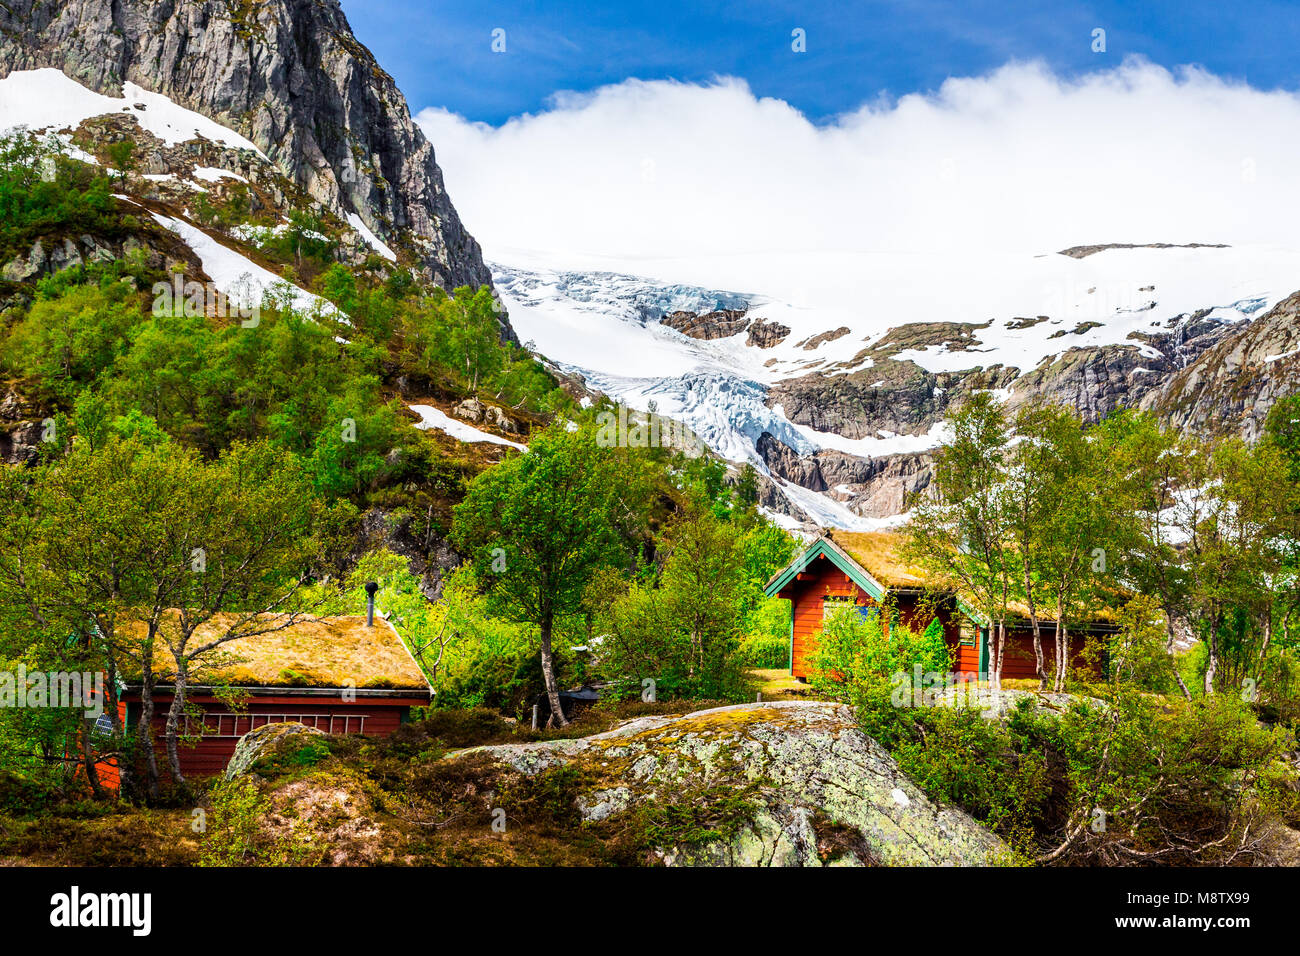 Folgefonna National Park with Buardalen valley and glacier in the background, Hordaland, Norway - Stock Image